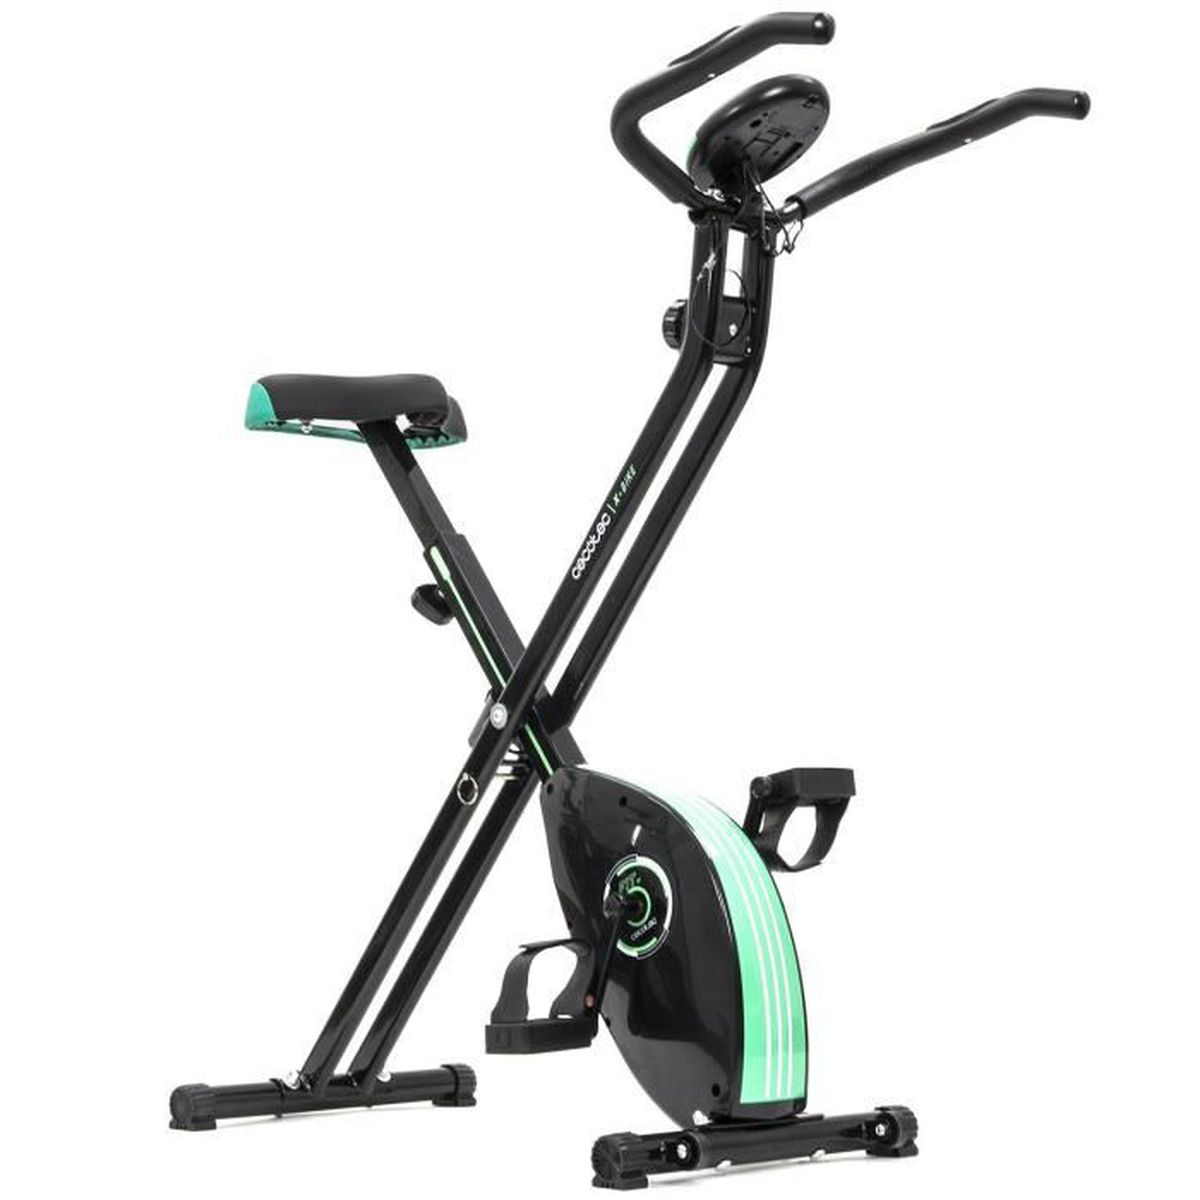 Cardiofrequencemetre velo achat vente pas cher cdiscount - Velo appartement pas cher ...